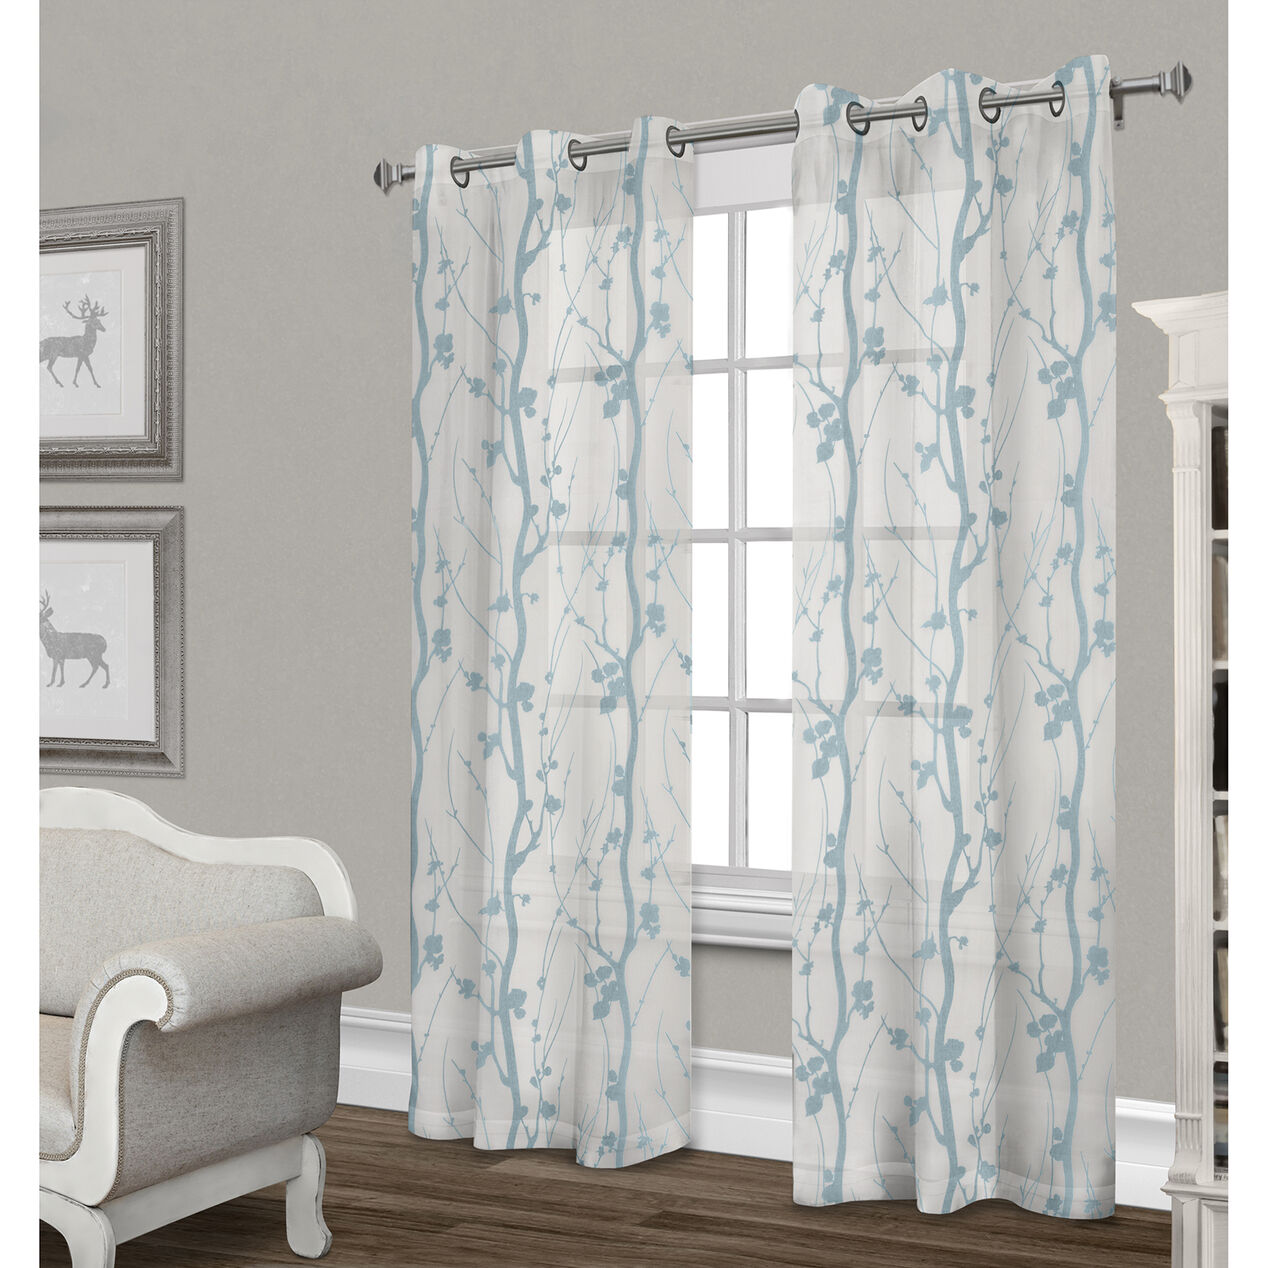 Corfu Sheer Curtain Panel White Teal 84 In At Home